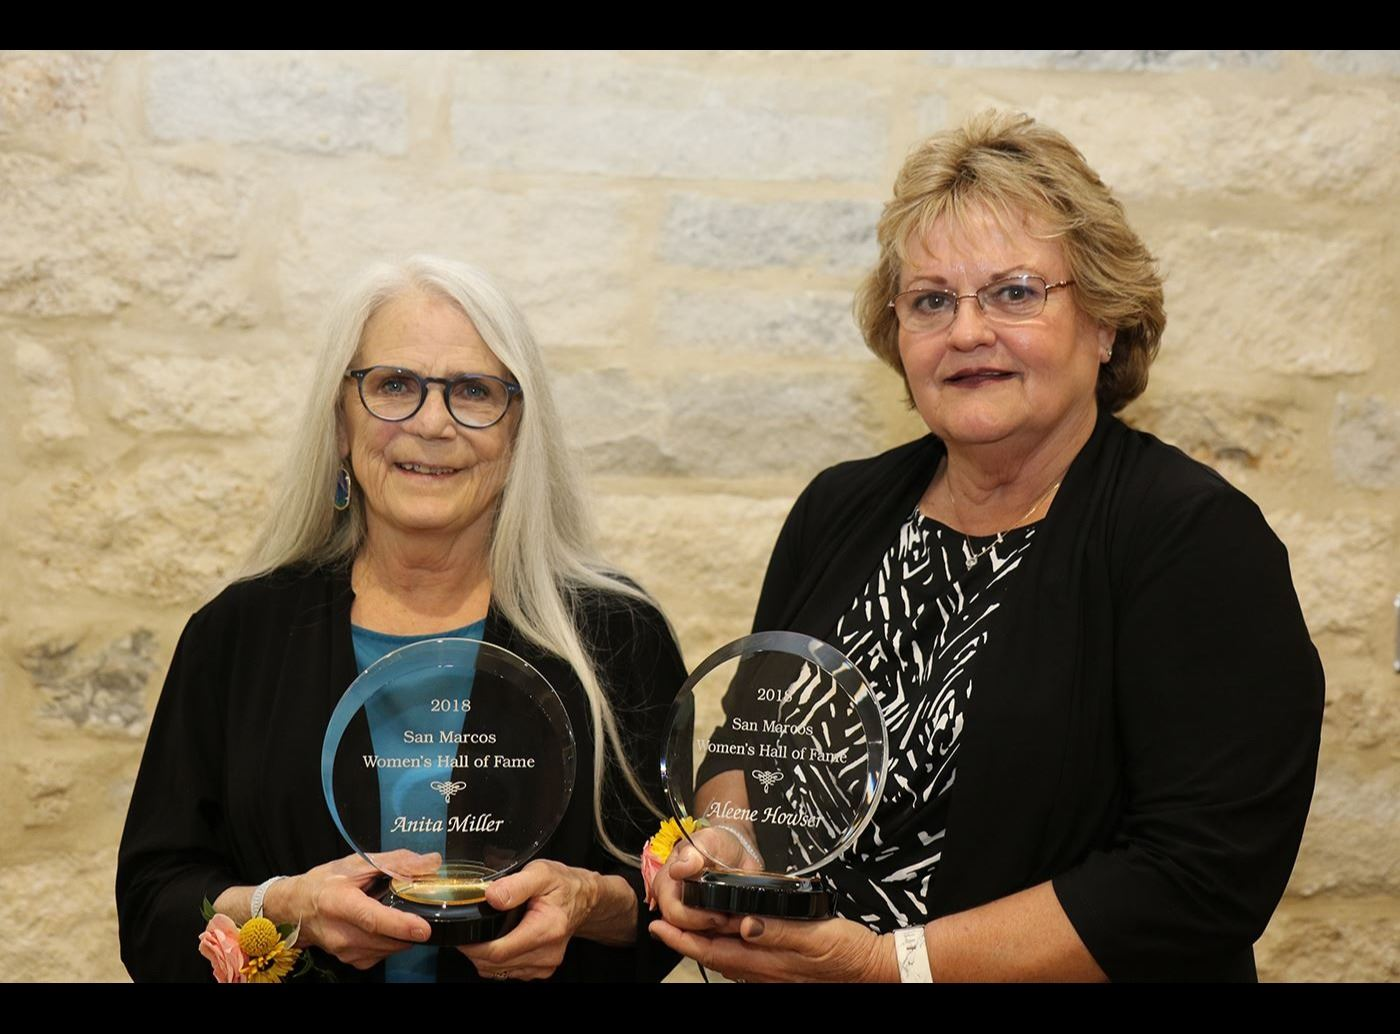 Photo of two women holding awards